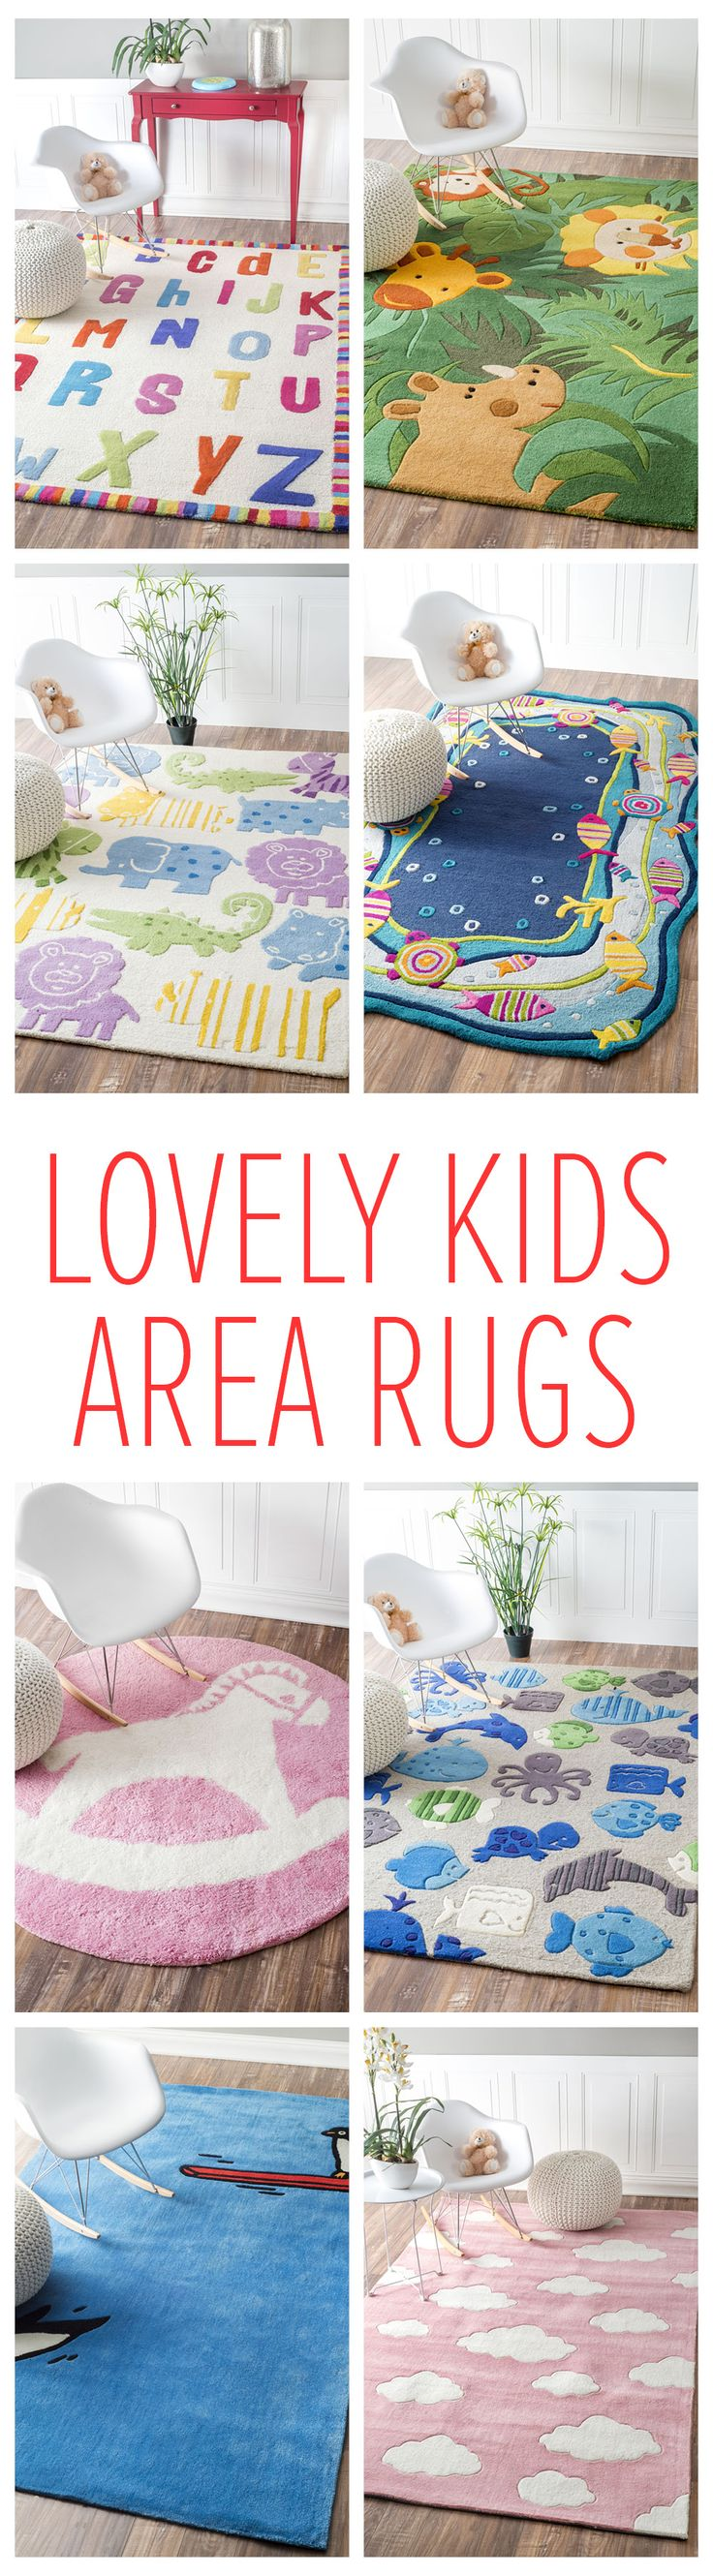 You always have to do it for the kids! Rugs USA has a large selection of decorative rugs that is perfect for any theme! Visit RugsUSA.com to see more affordable options with savings of up to 80% off!